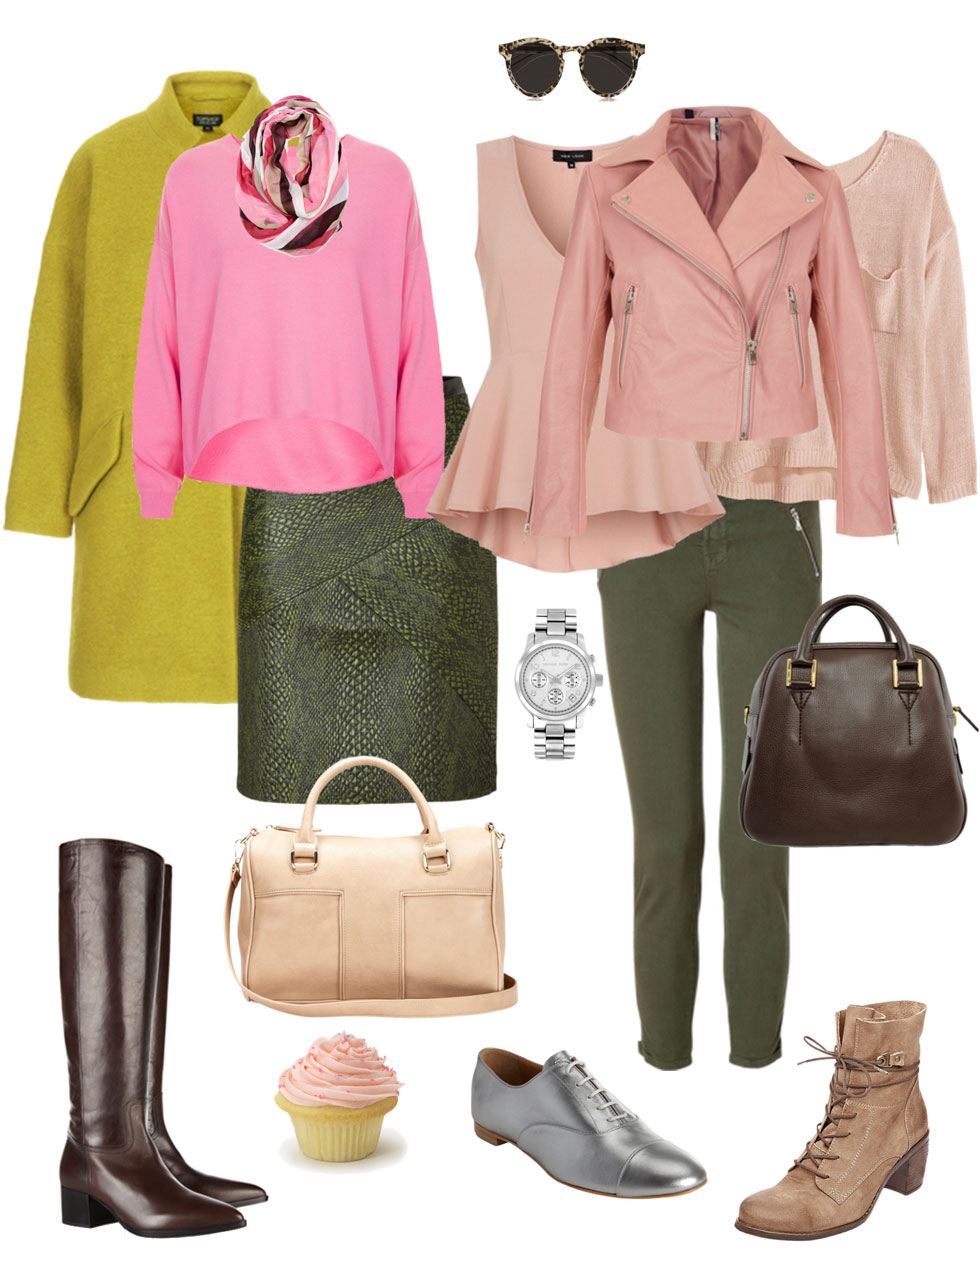 Ensemble Olive And Pink - YLF